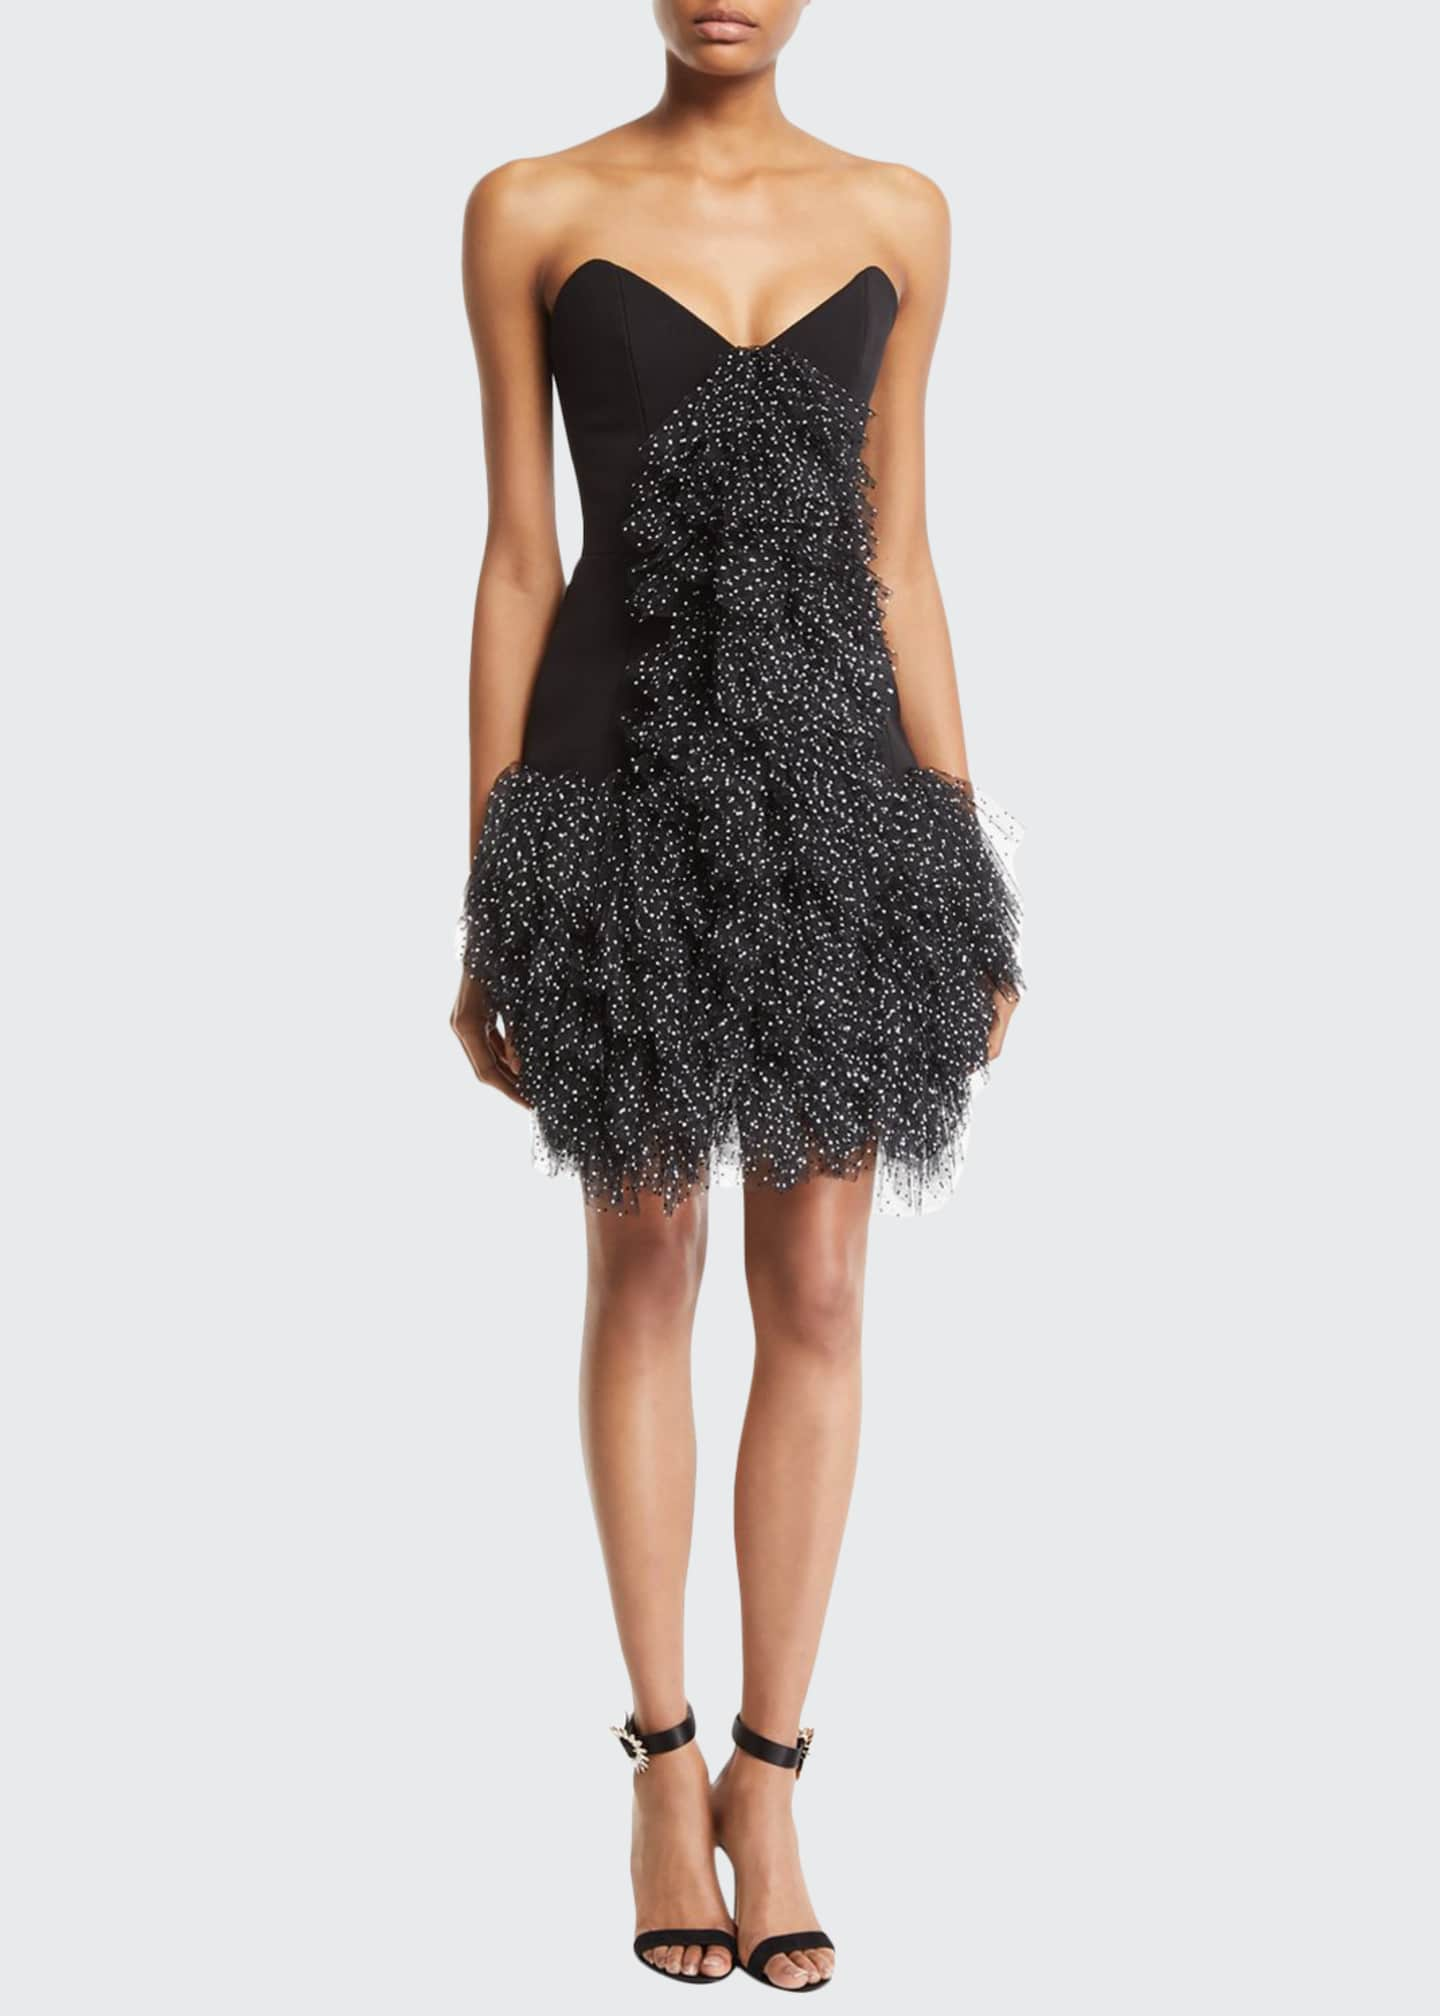 Carmen March Ruffled Tulle-Front Strapless Cocktail Dress